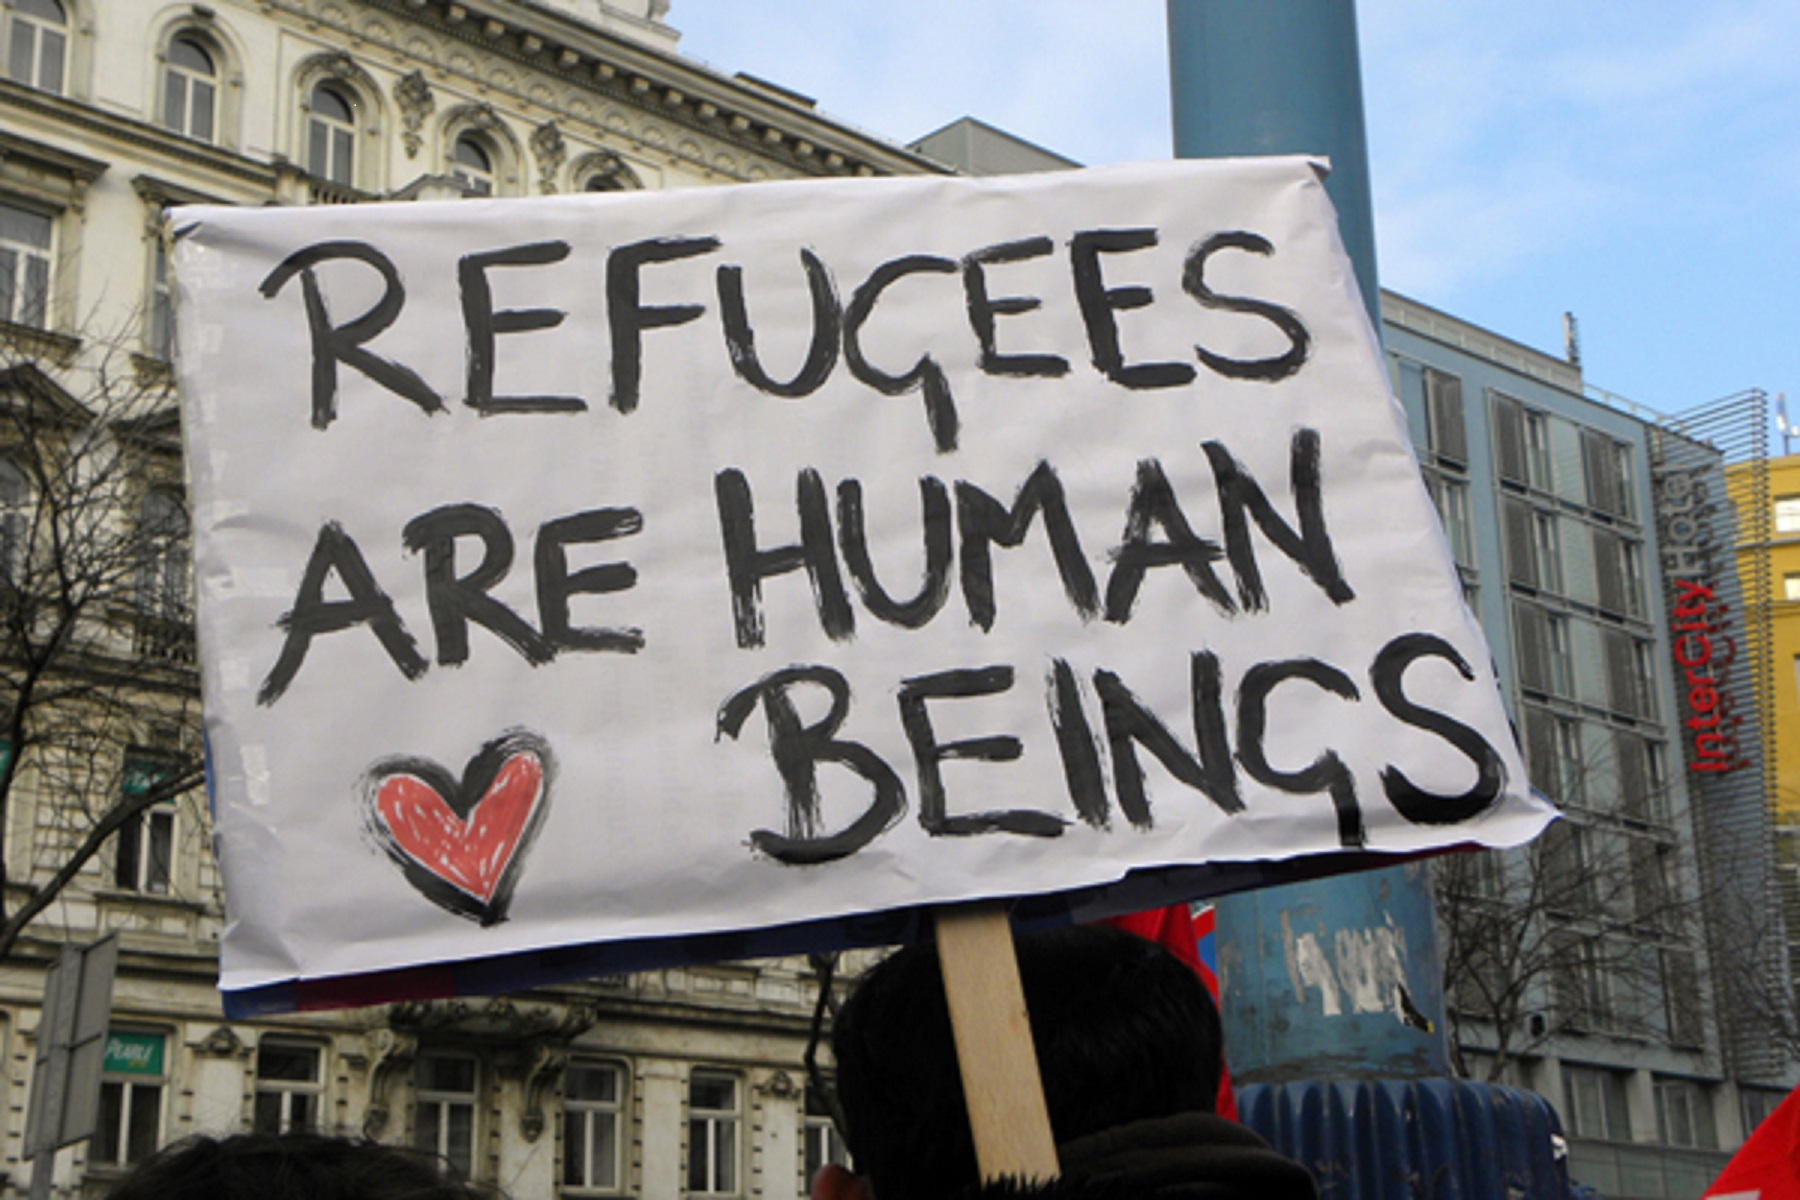 Image: refugees are human beings